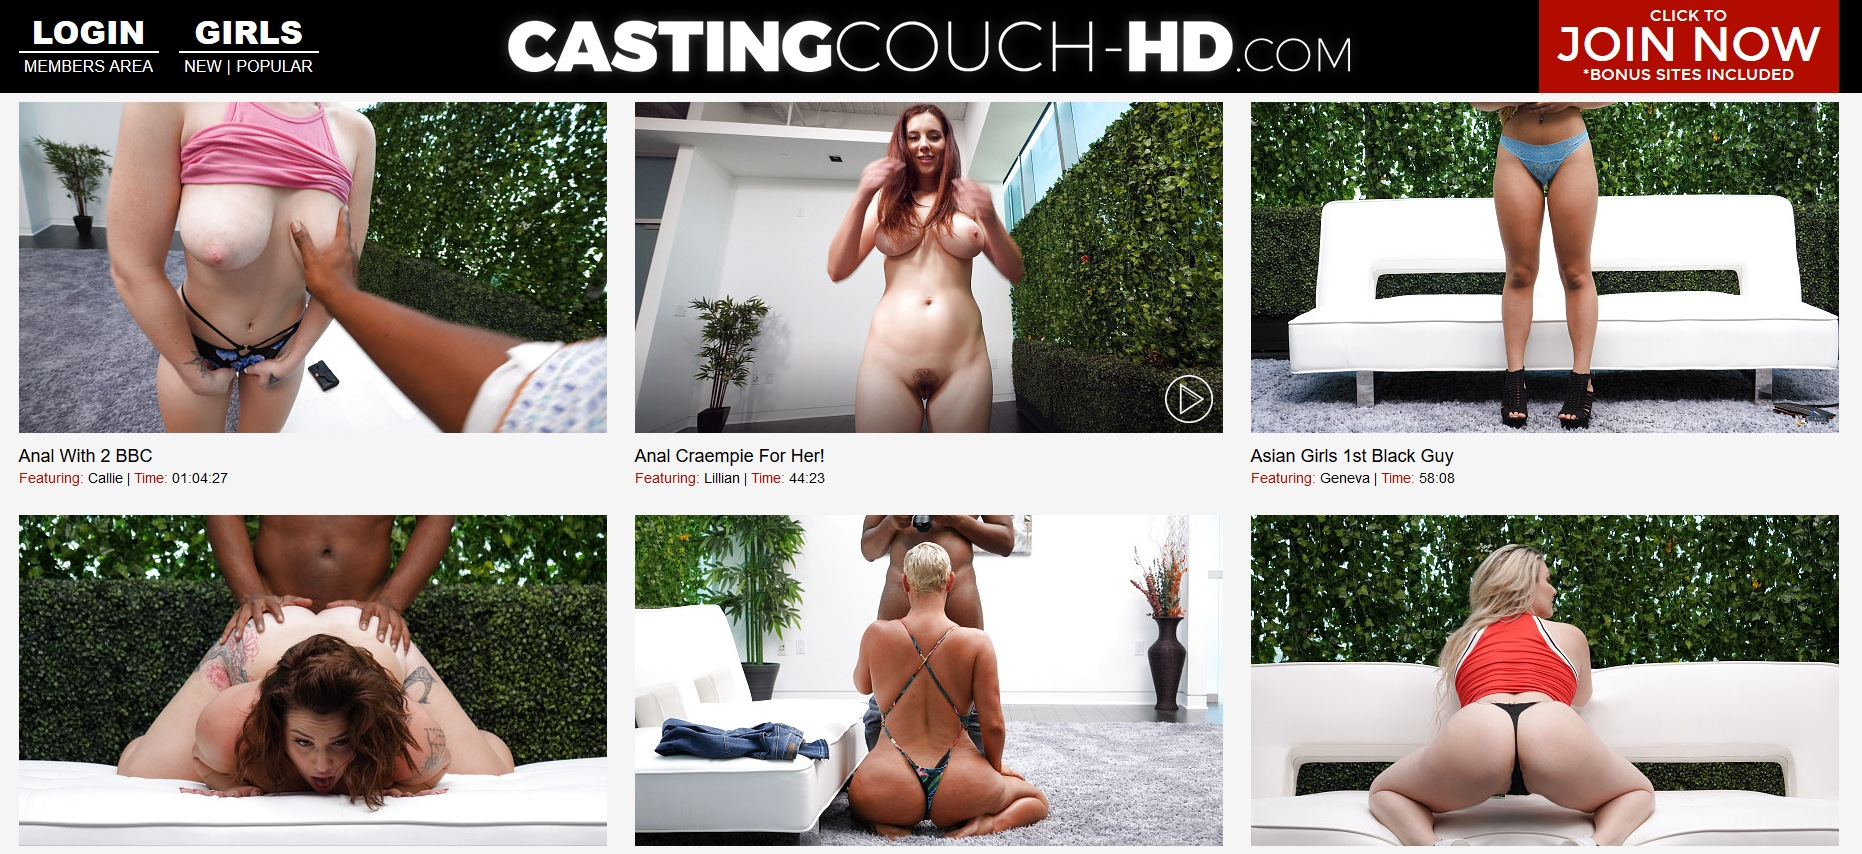 https://piratepass.pw/wp-content/uploads/2021/04/castingcouch-hd.com-DlzqWKpMvyPAEKCuKeOIlAlY.jpg pass